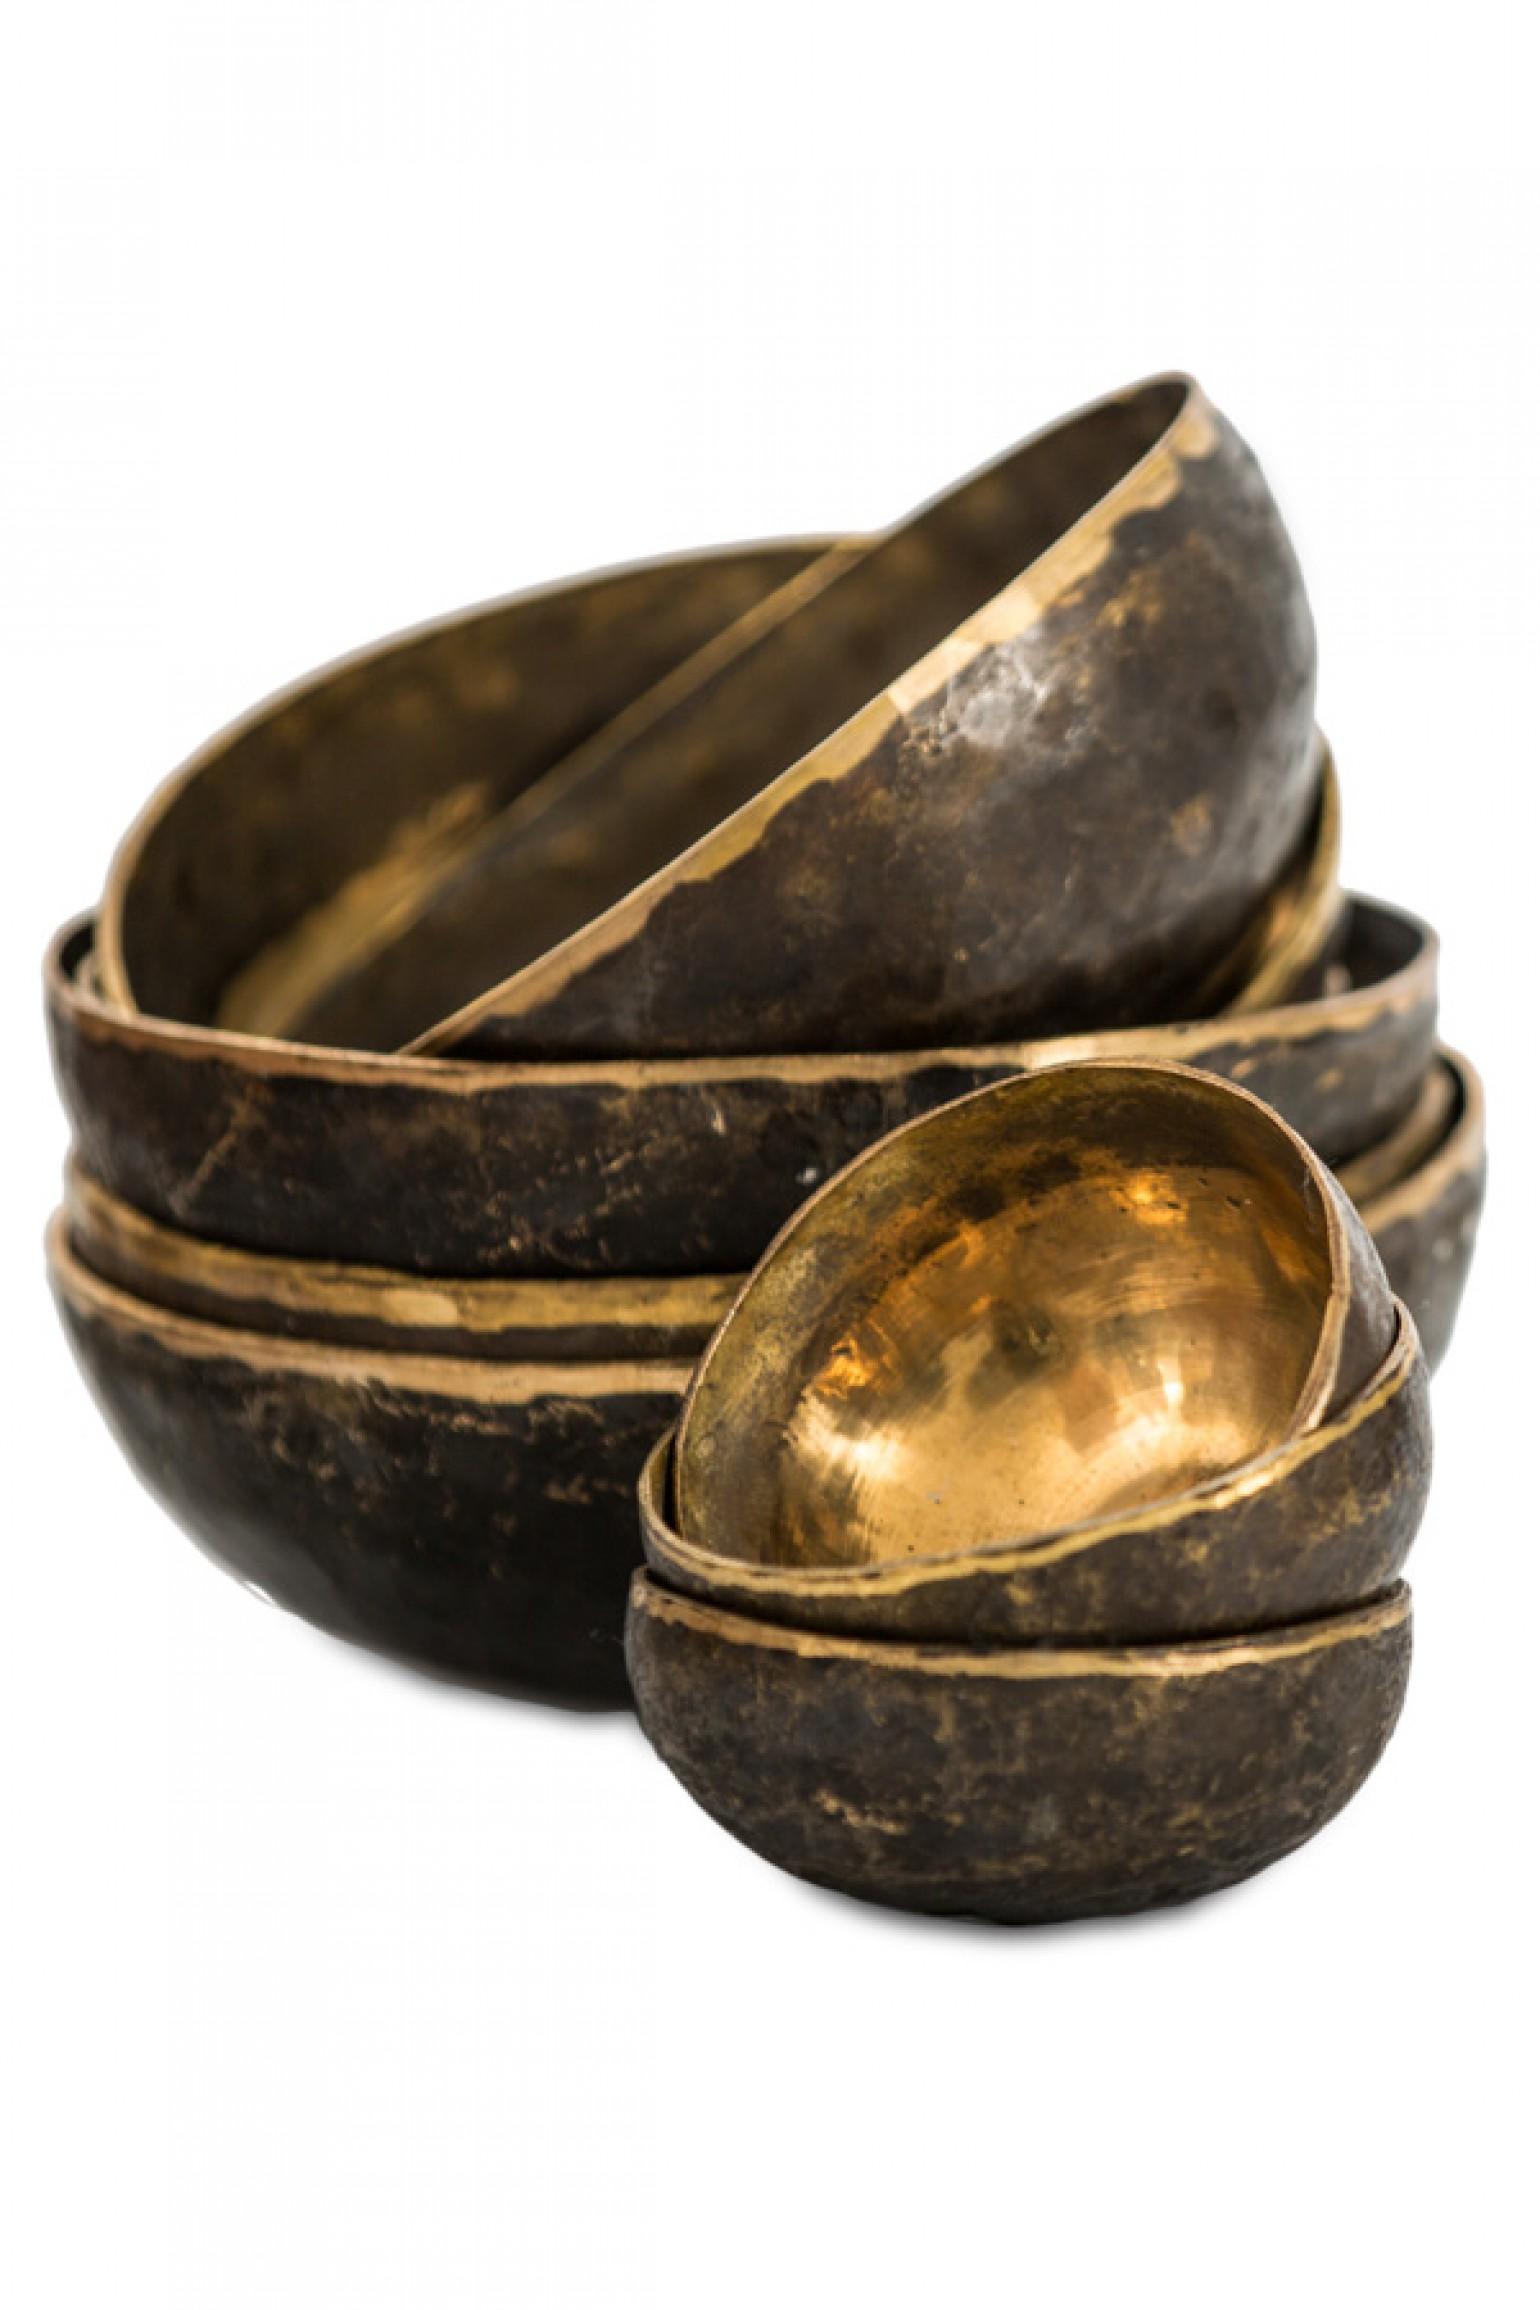 Cloth and Co Large Brass Bowl